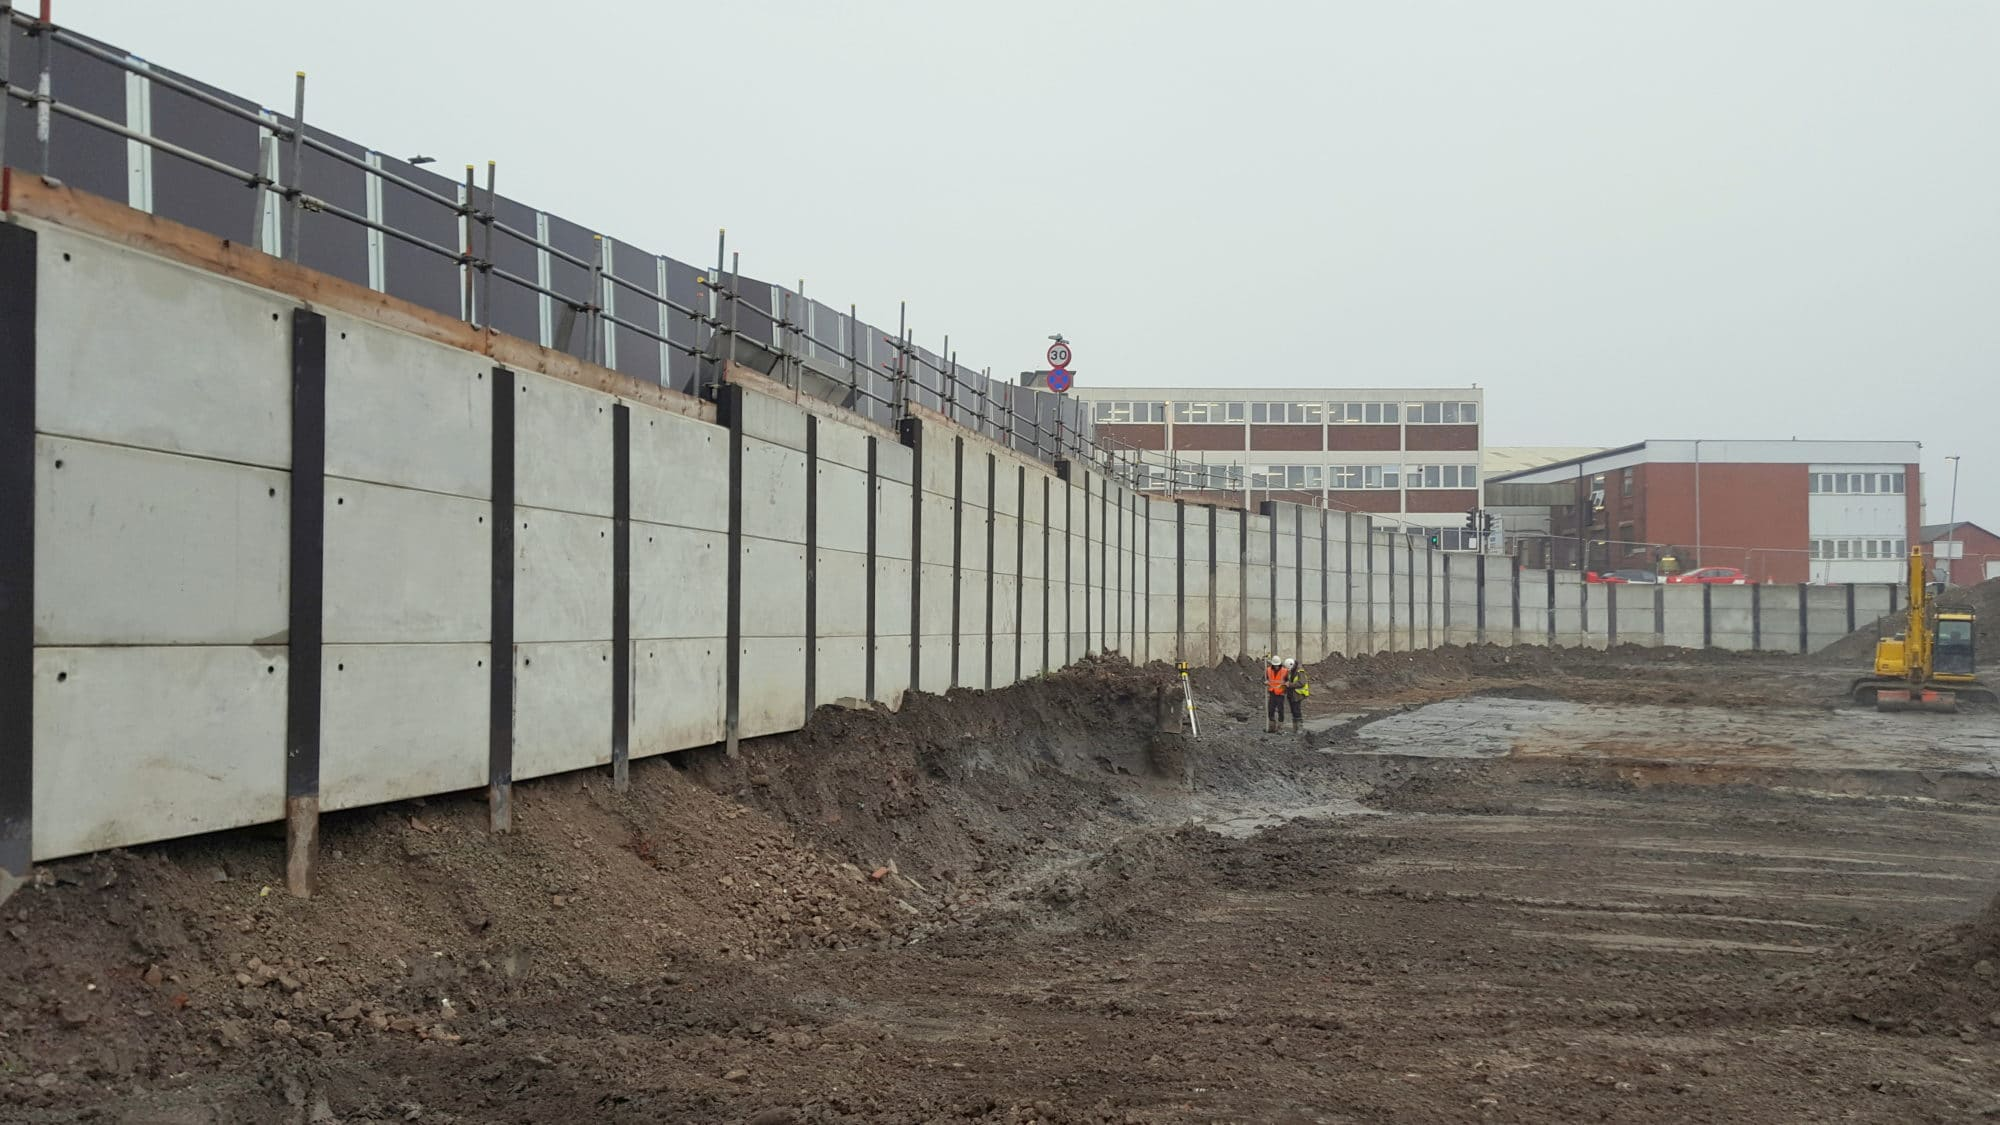 Rochdale Riverside - Multidiscipline Ground Engineering solution